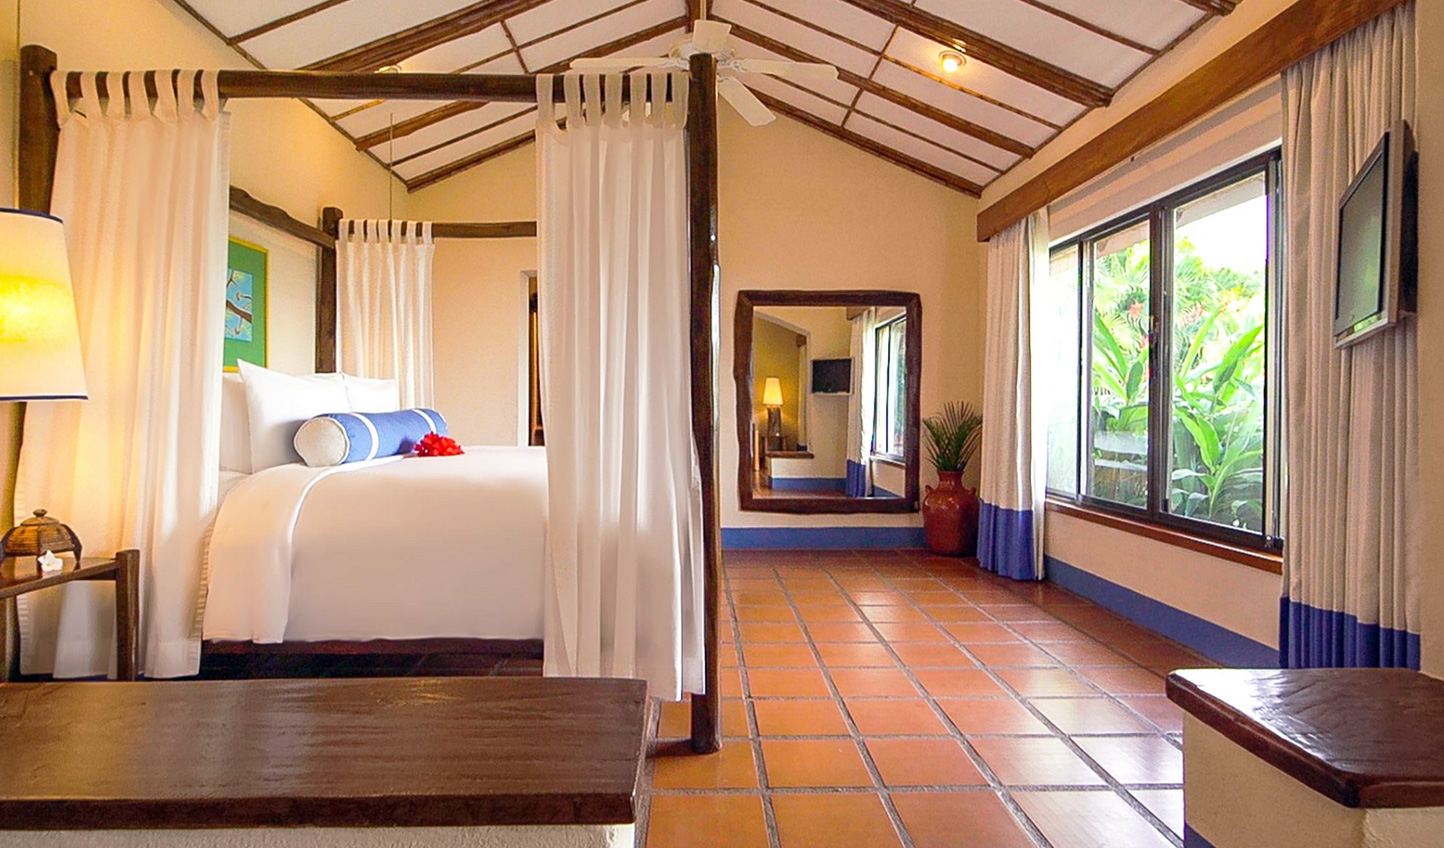 Relaxation and comfort is of the utmost importance at Punta Islita